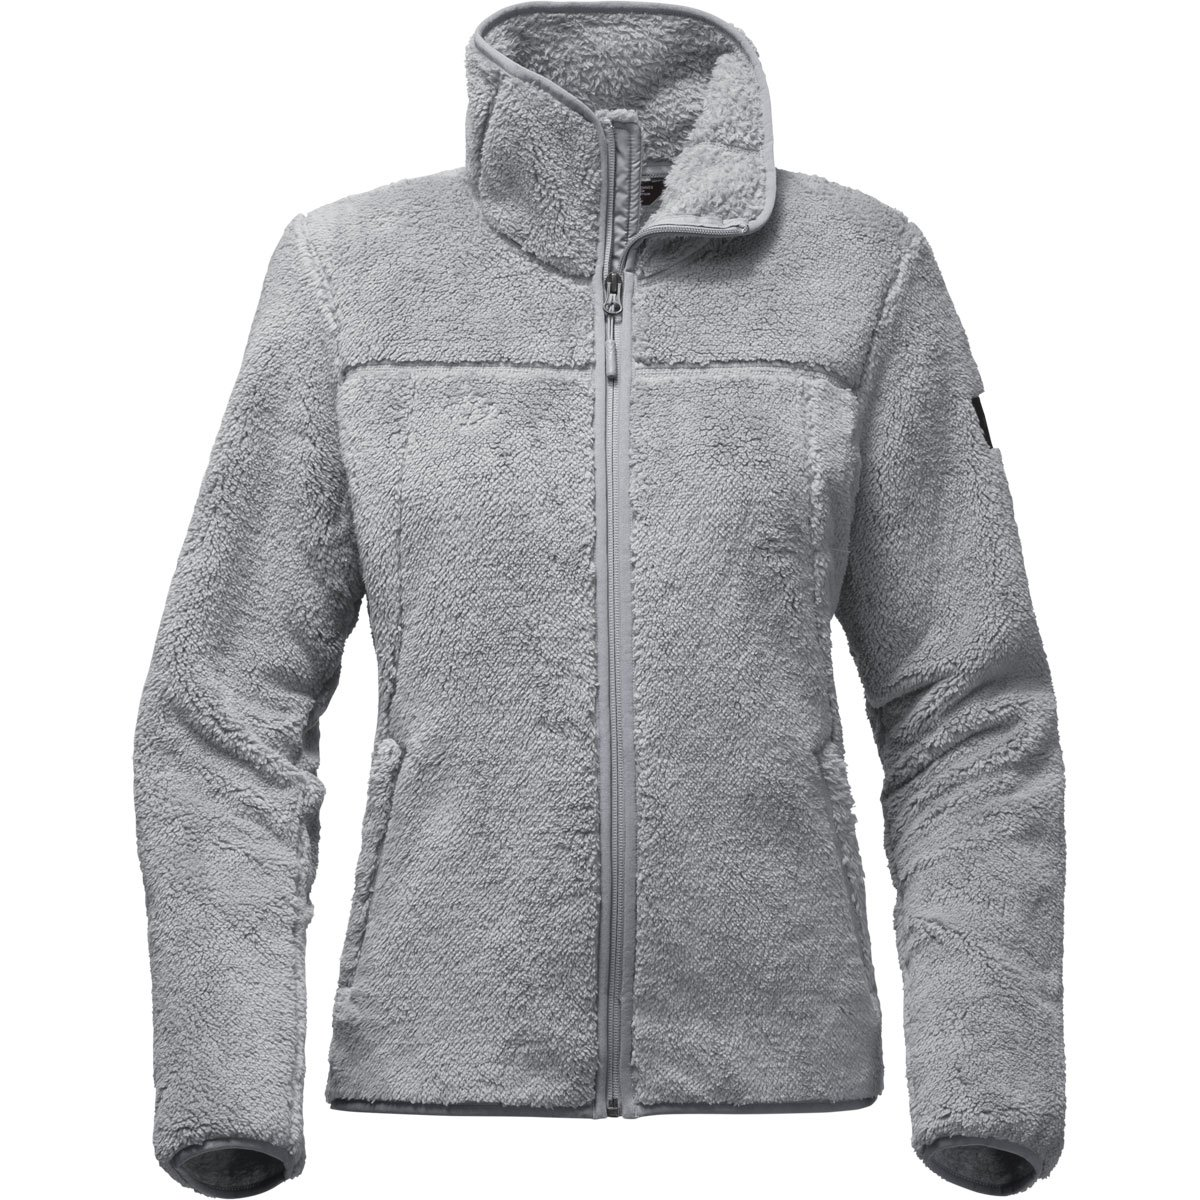 The North Face Campshire Full Zip - Women's Mid Grey Large